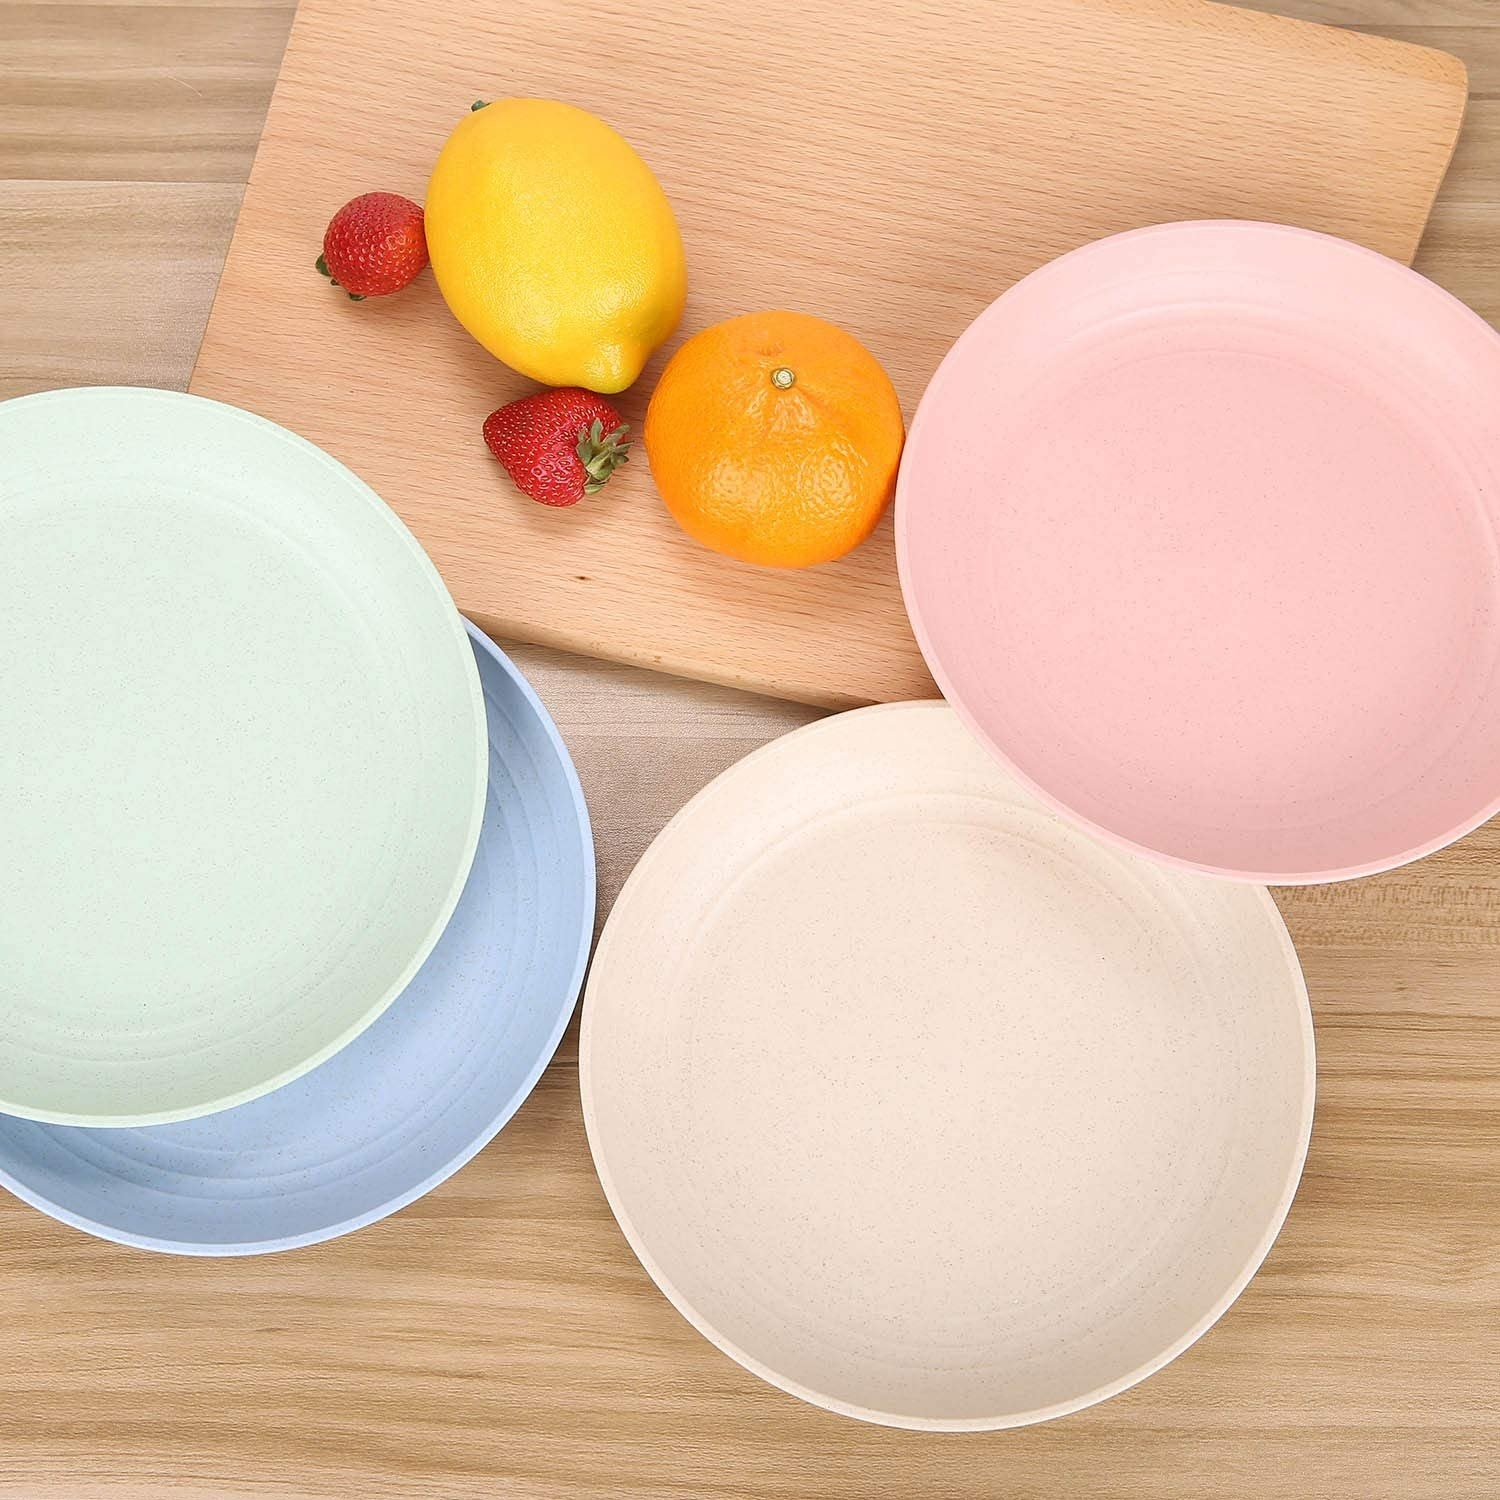 The plates in pink, light blue, light green, and tan